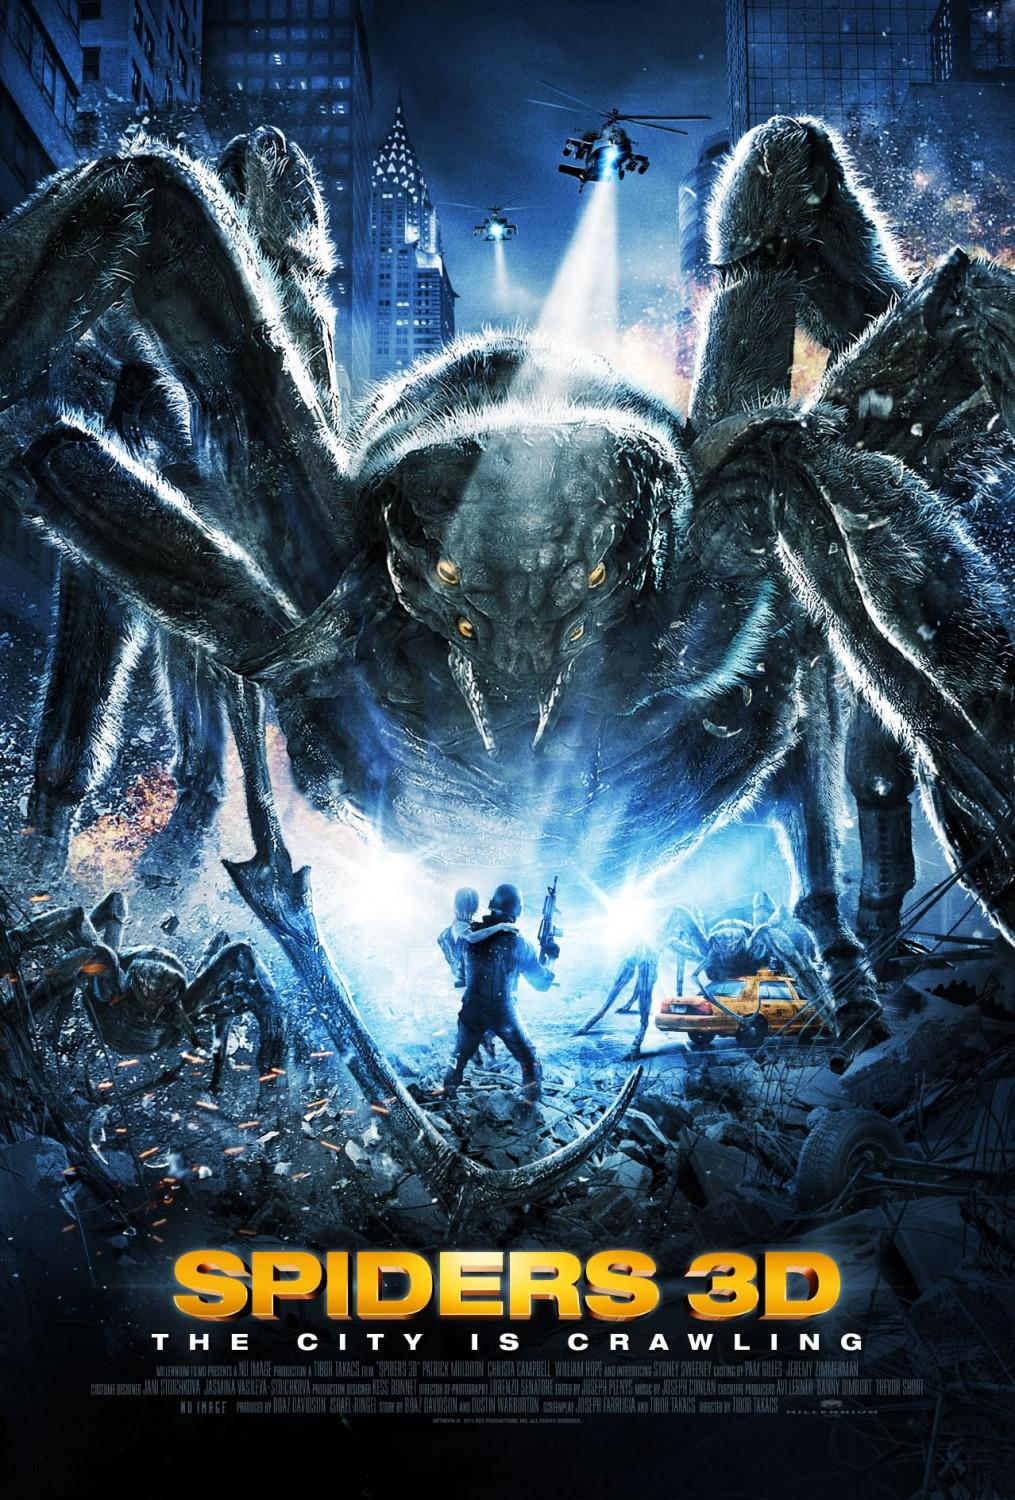 Spiders 3D - the city is crawling - monster horror invasion film poster